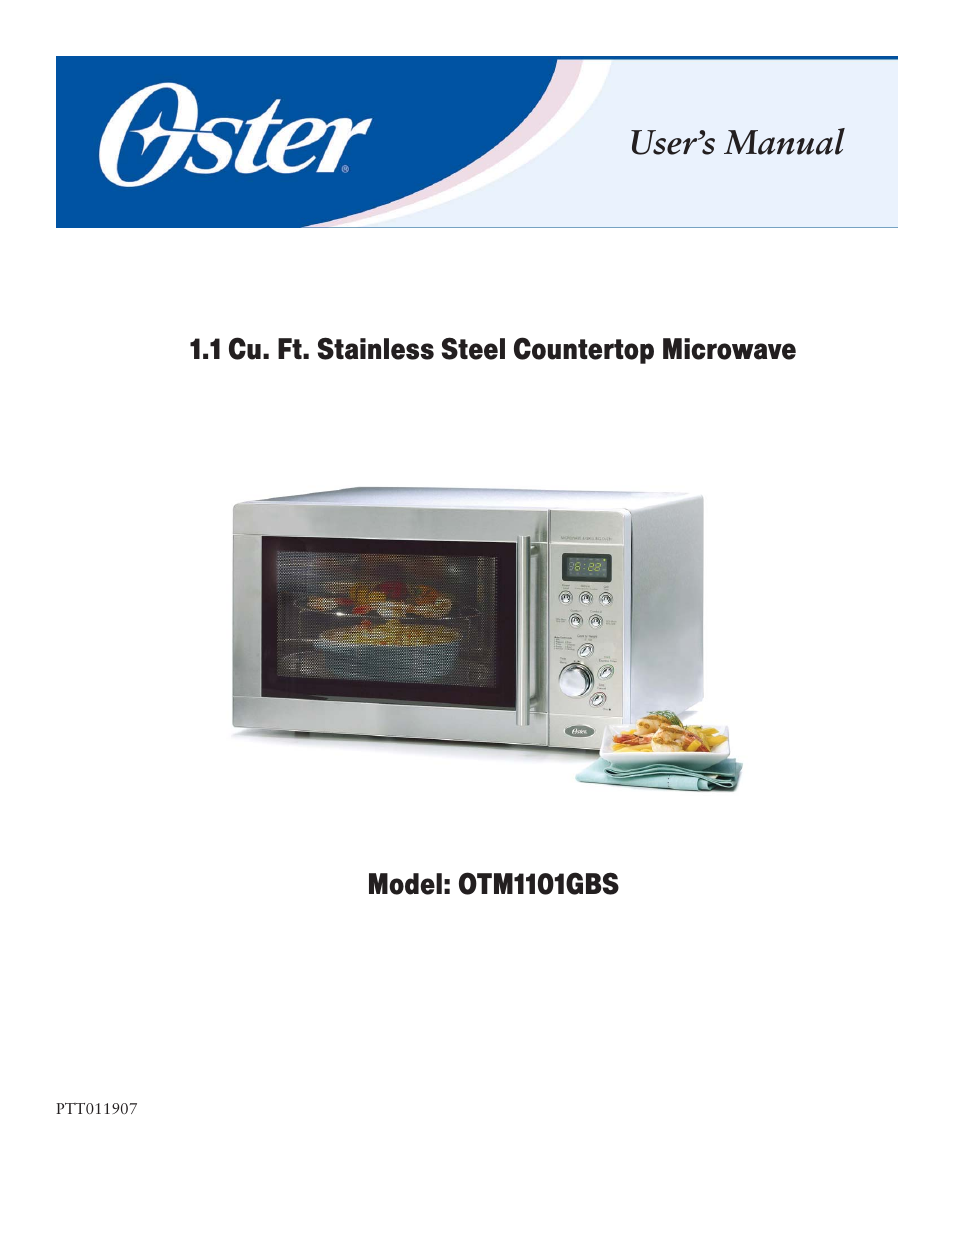 oster otm1101gbs user manual 15 pages rh manualsdir com oster microwave oven ogzj1104 manual oster microwave oven manuals